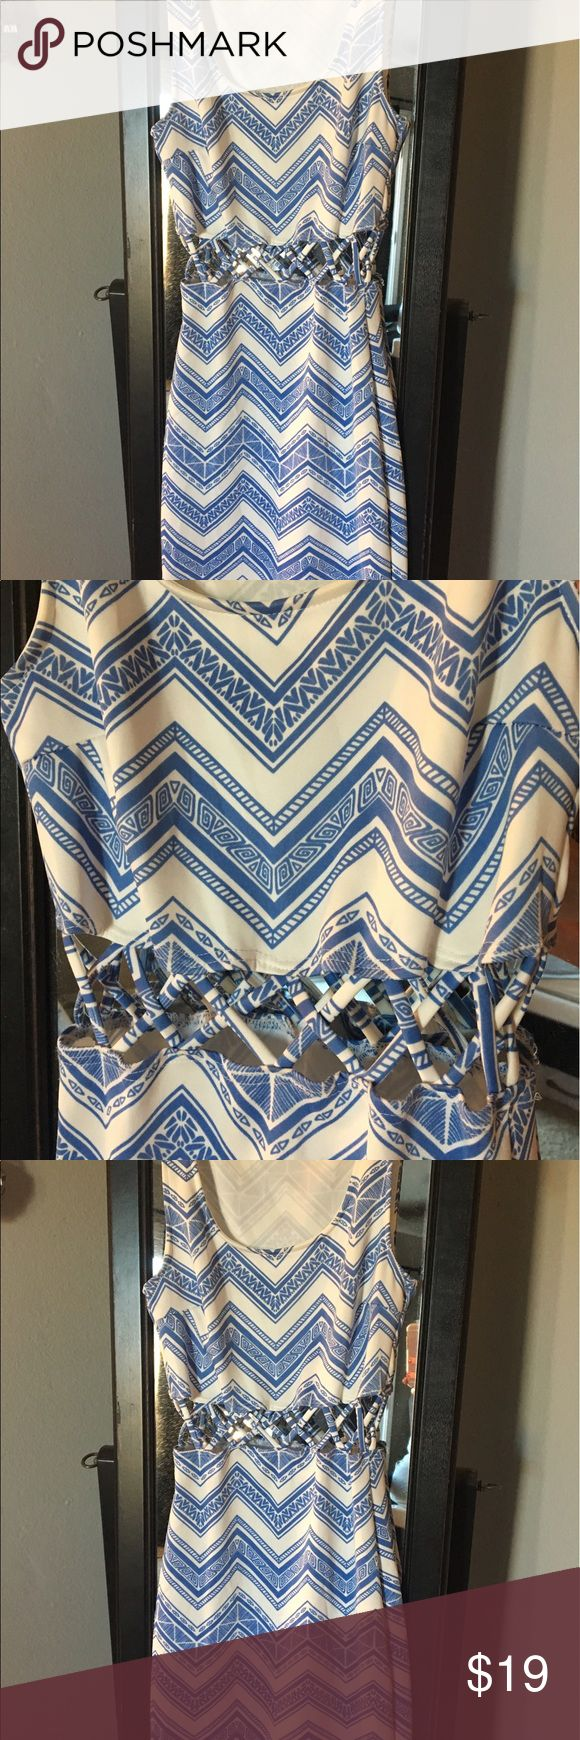 Cutout dress XS SOPRANO bodycon dress with cutout detail. Blue and white tribal design. Stretchy fabric. Soprano Dresses Mini